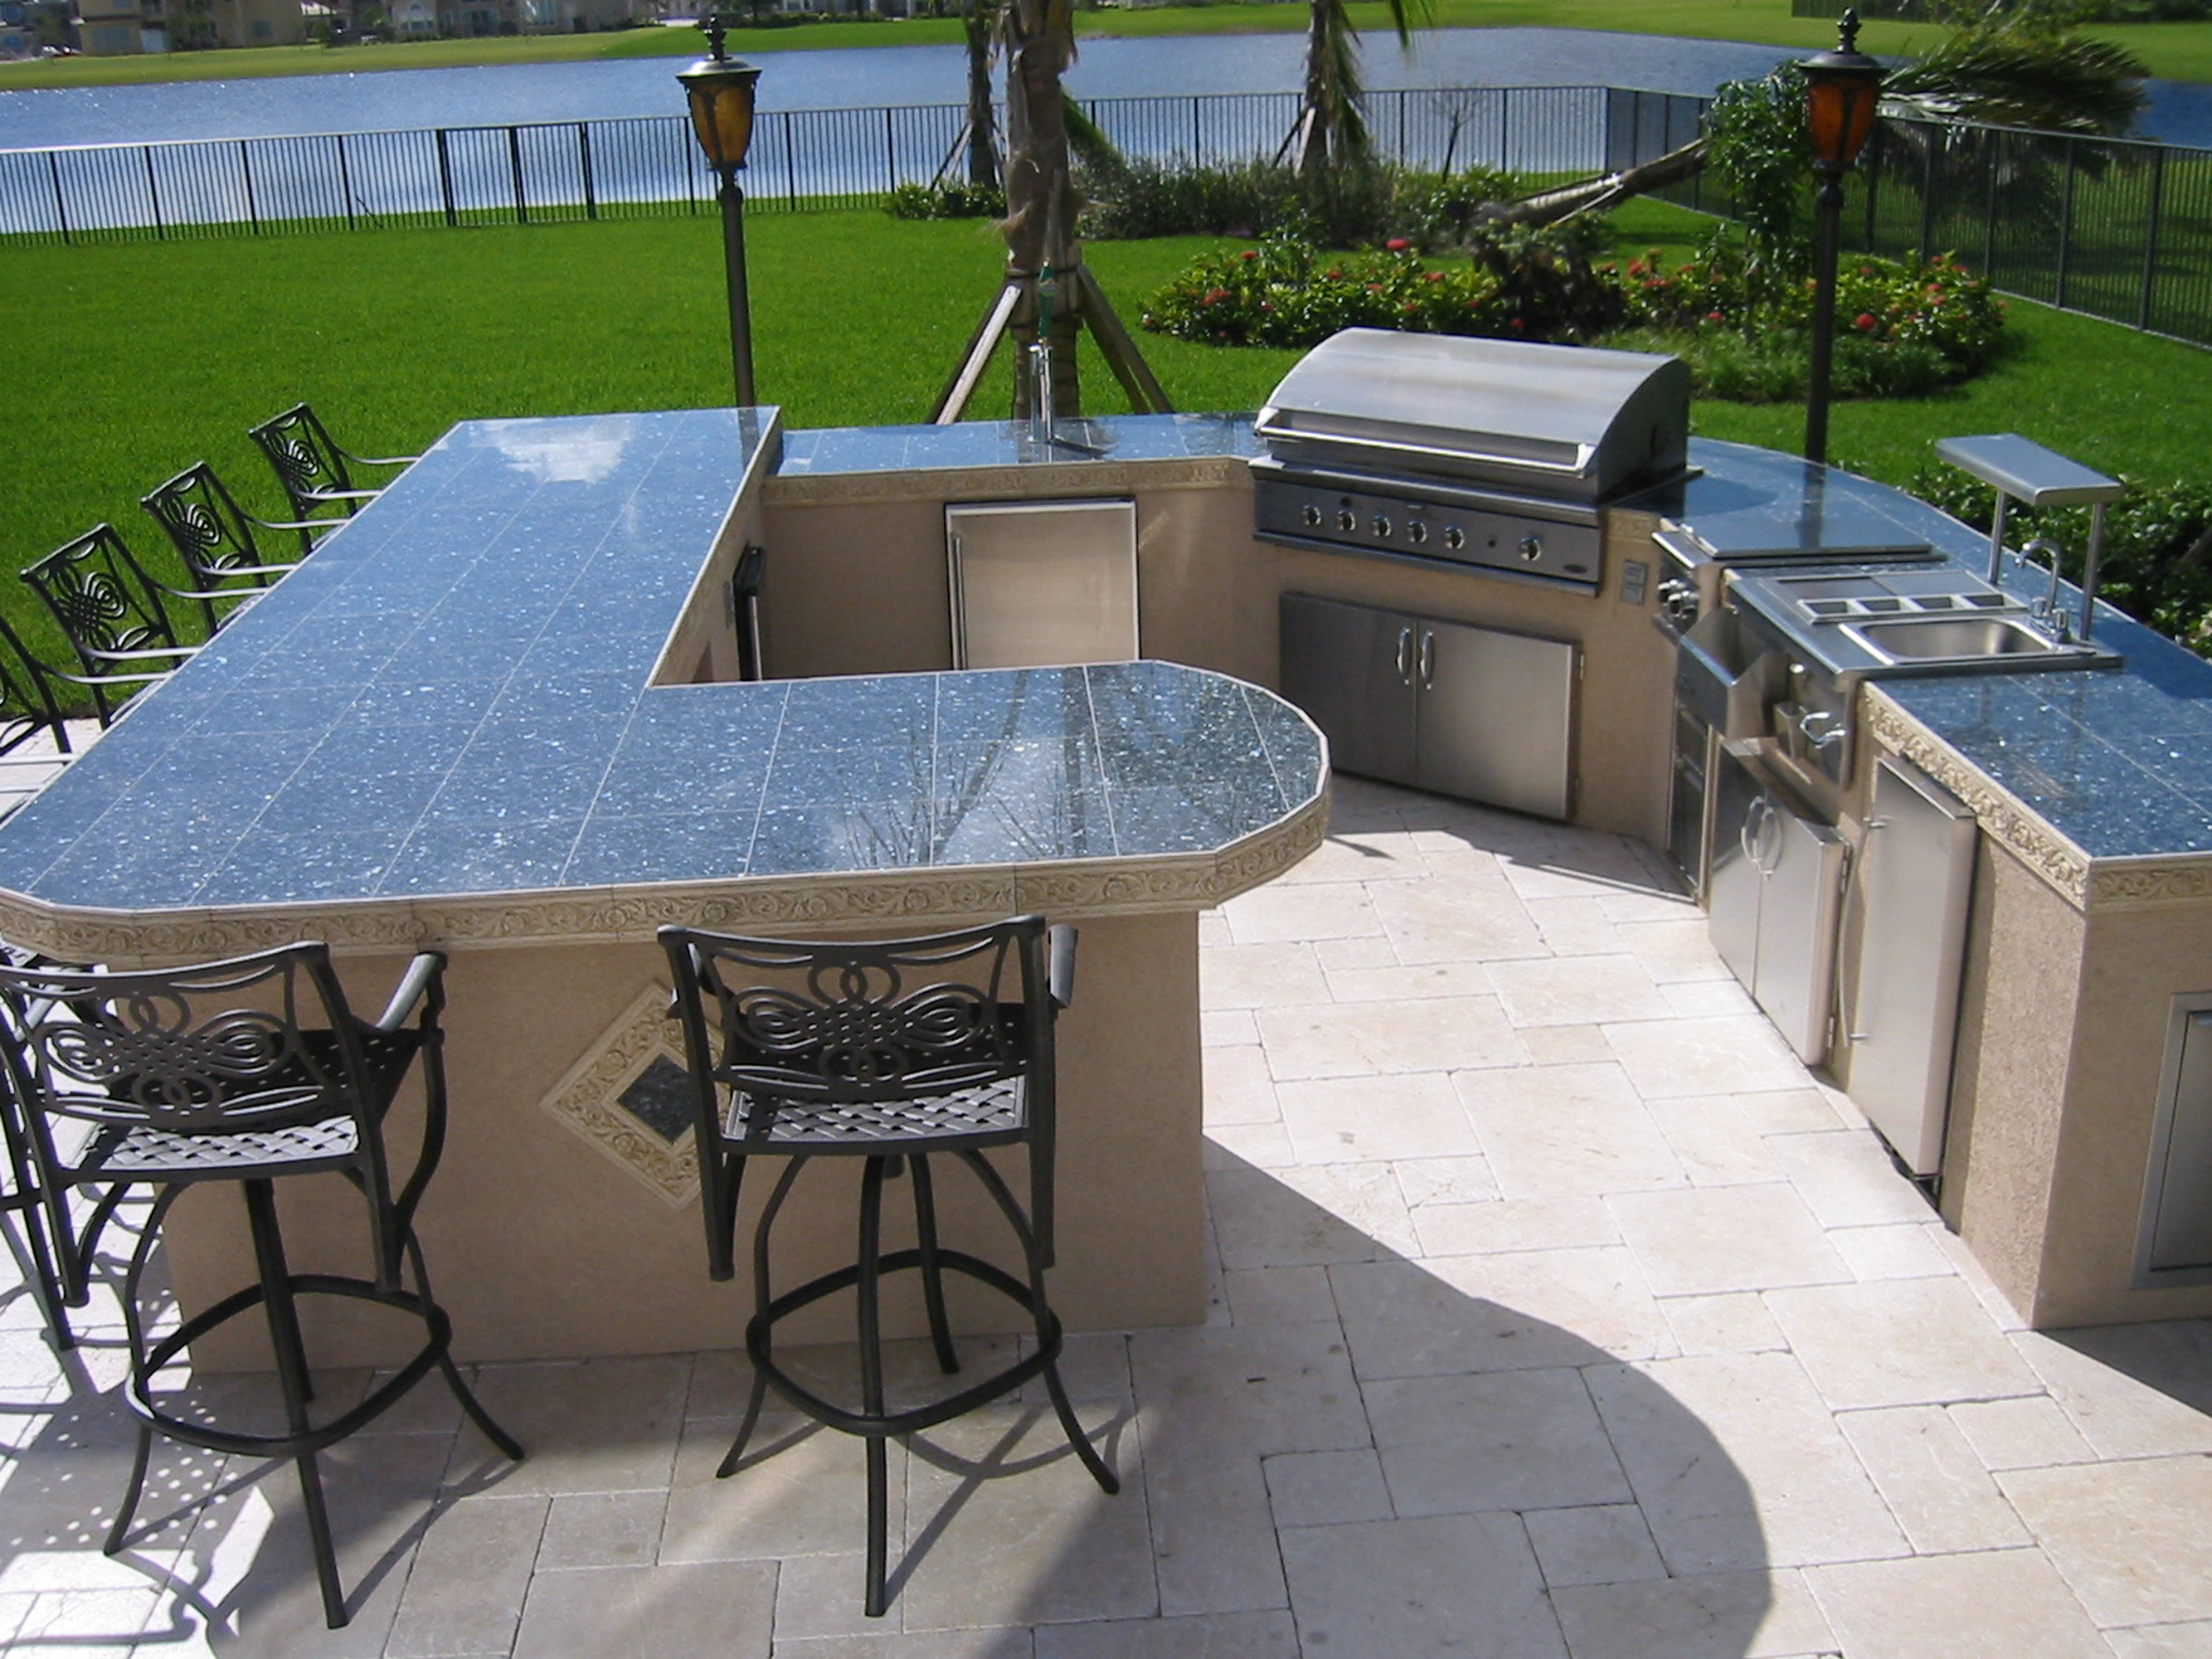 Custom Outdoor Designs : Huge! custom outdoor kitchen with built in dcs gas bbq grill and keg